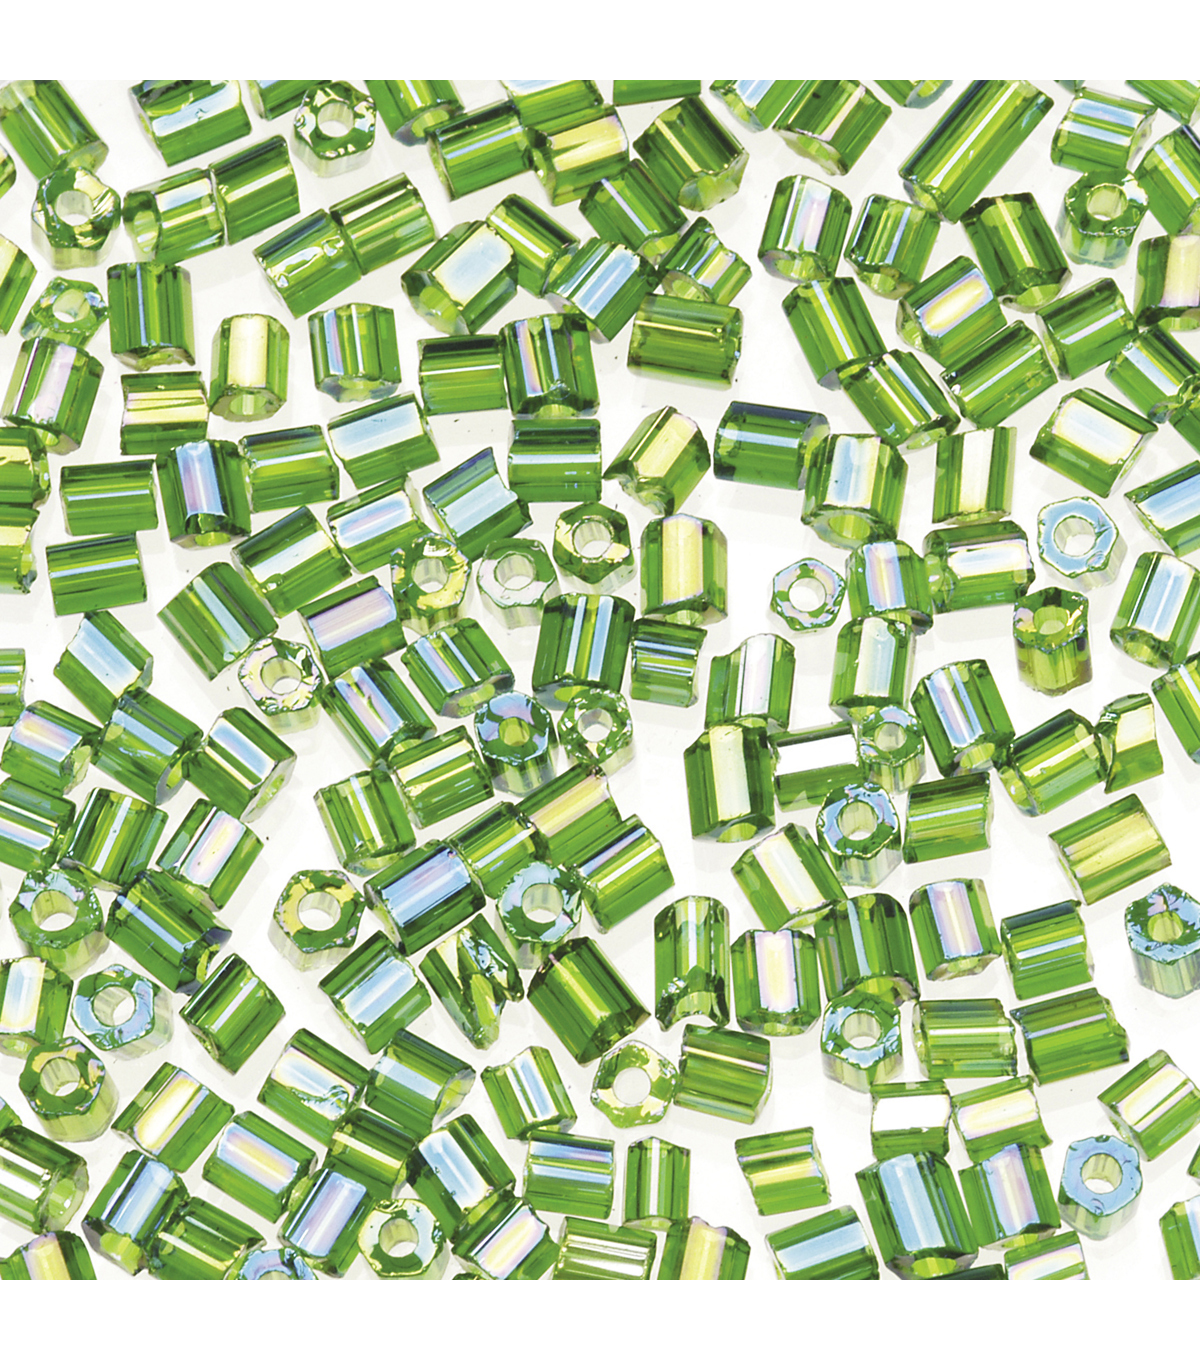 2-Cut Tiny Glass Beads-Green with Rainbow Effect, 20 grams